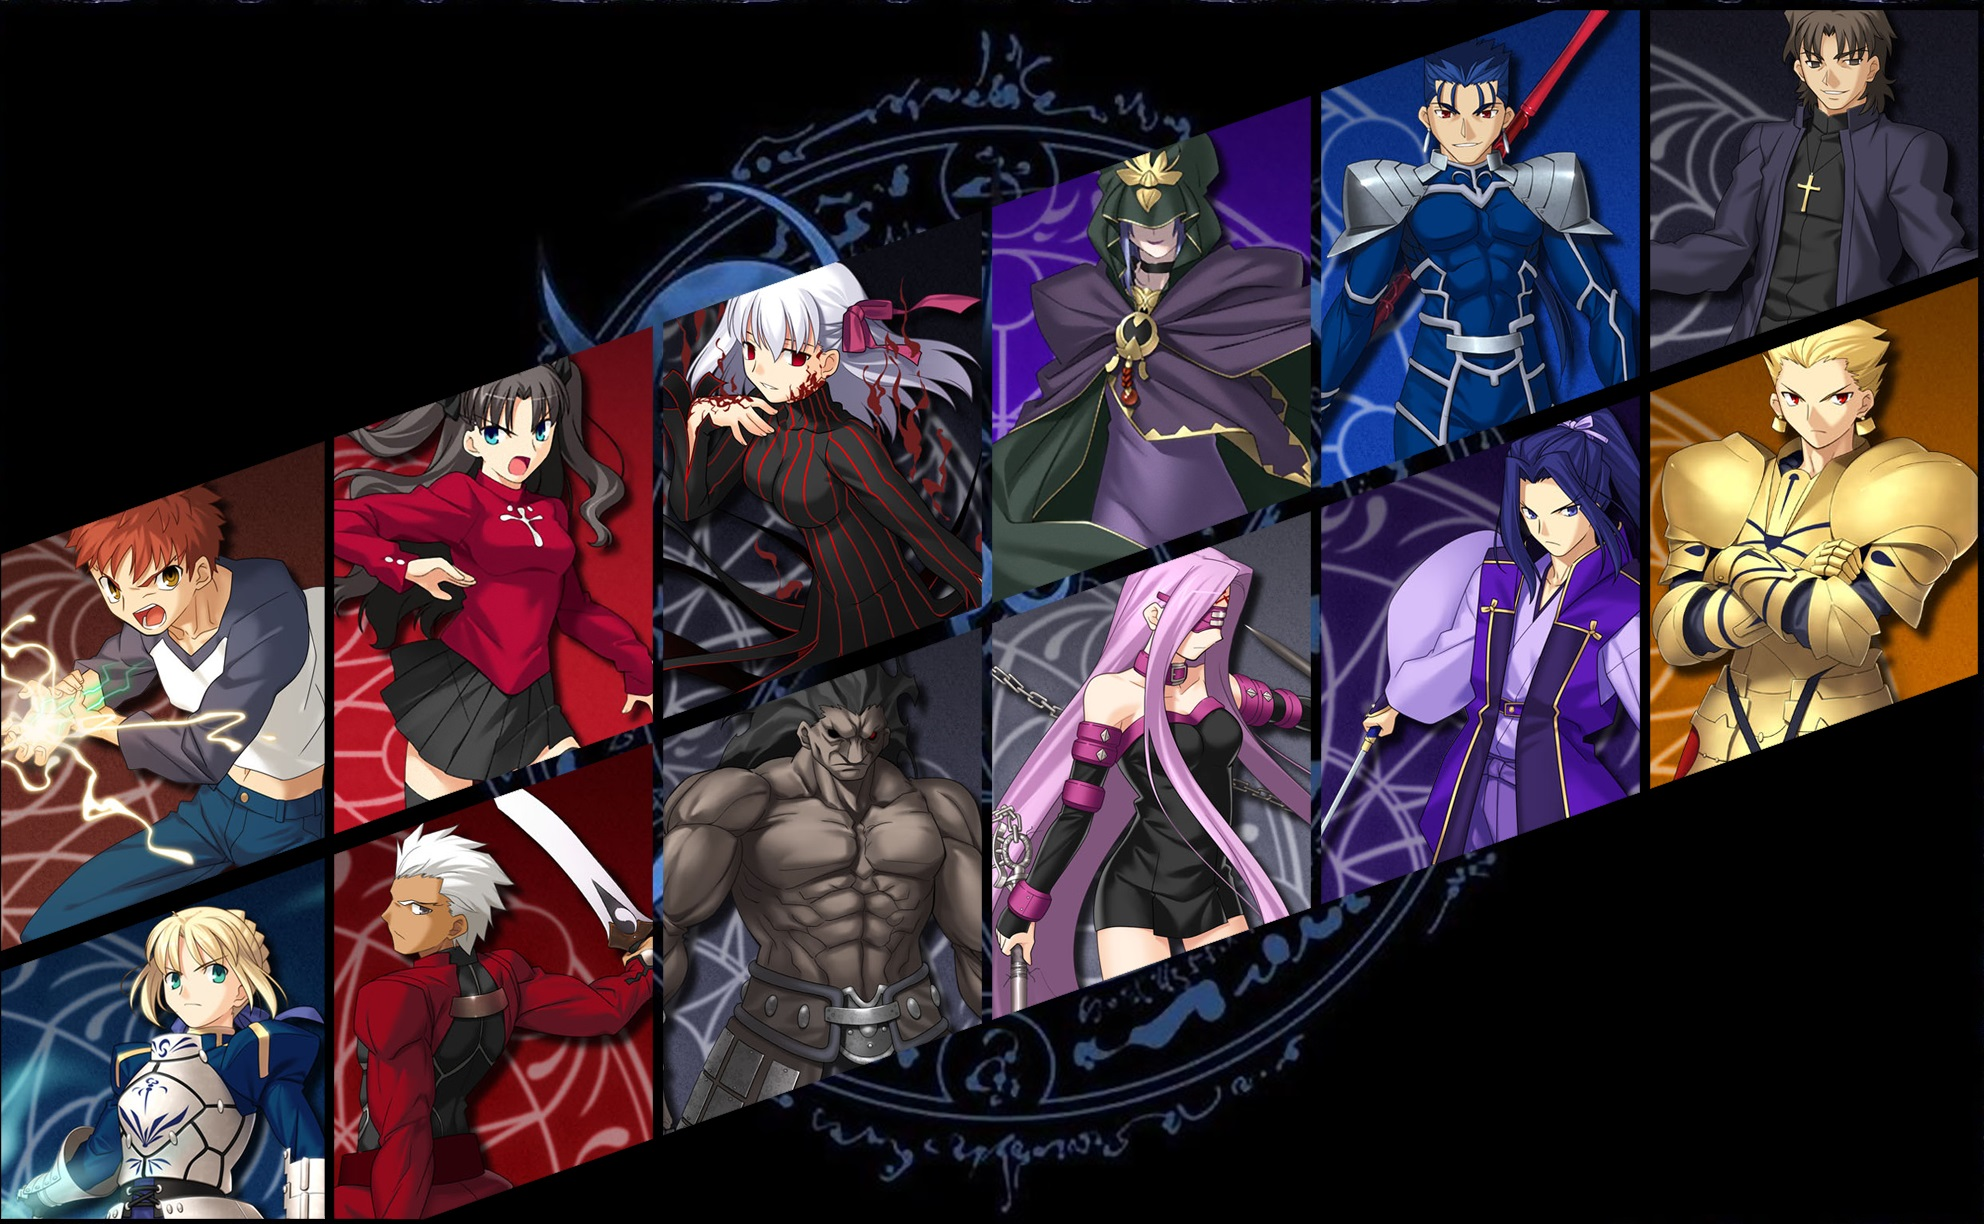 Fate stay night hd wallpaper background image 1984x1224 id 679325 wallpaper abyss - Fate stay night wallpaper ...